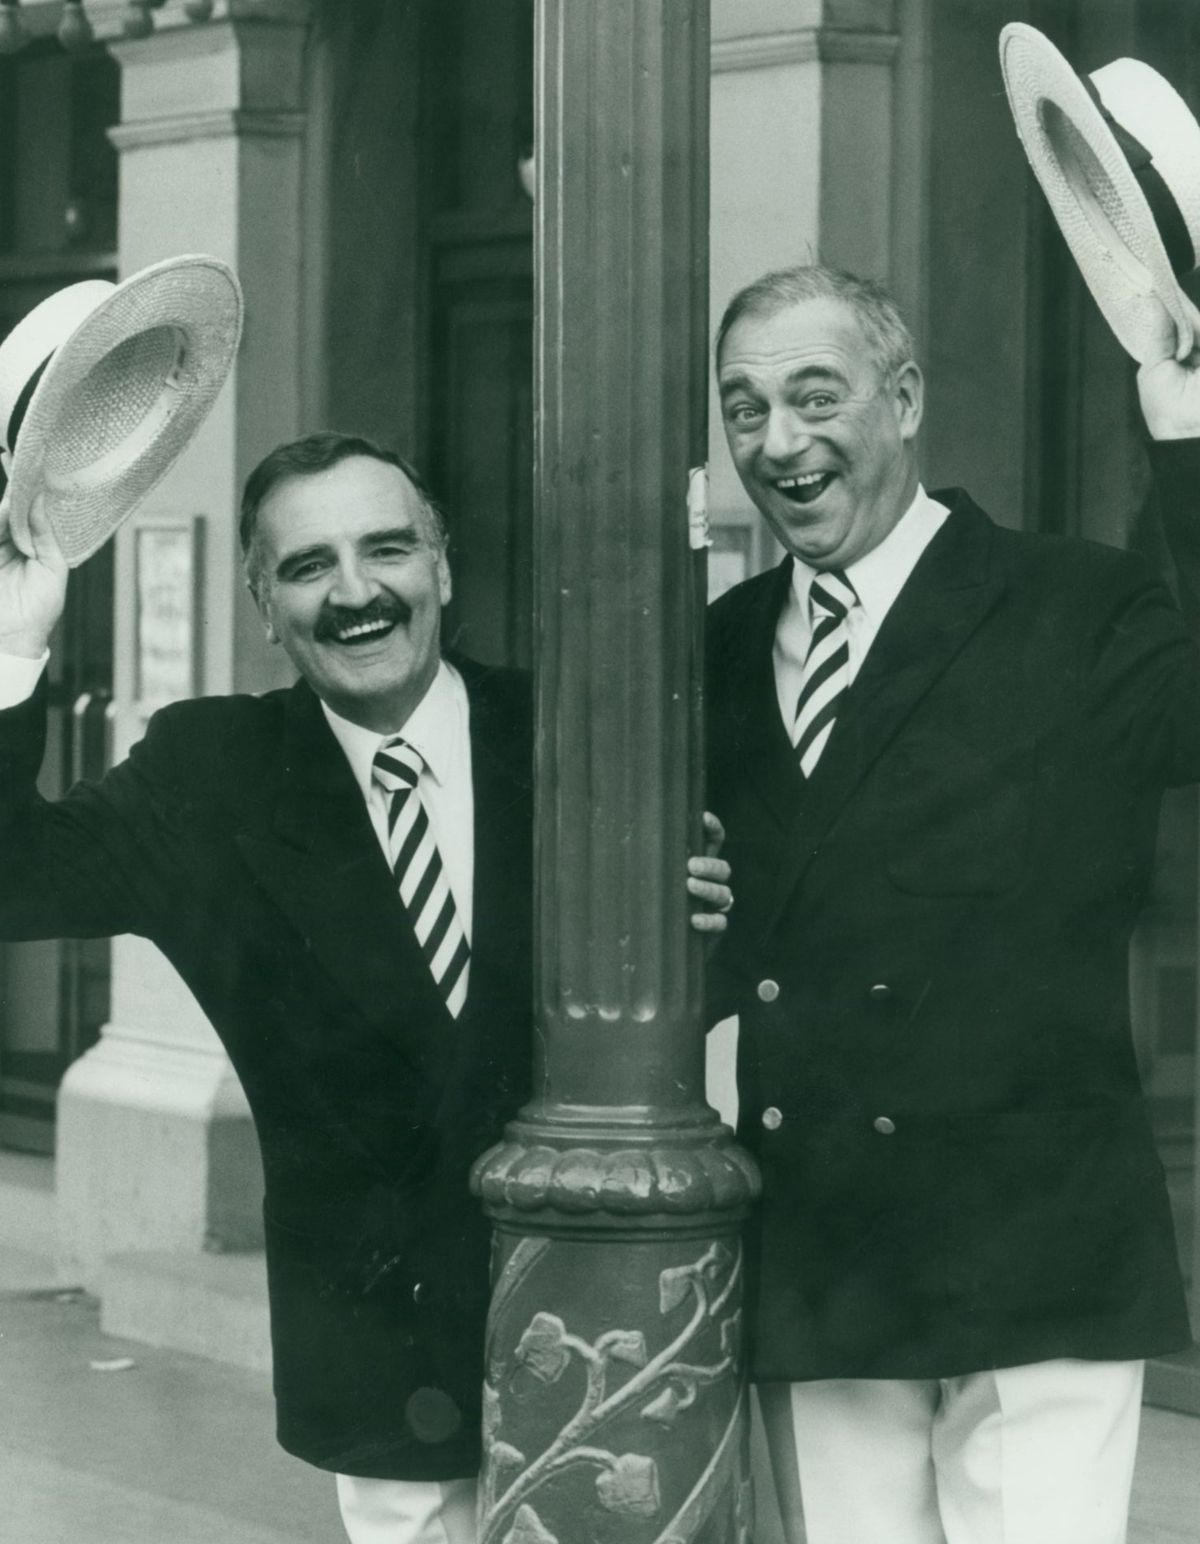 Billy Dainty and Roy Hudd outside the Grand Theatre, Wolverhampton, Just a Verse and Chorus in October 1985